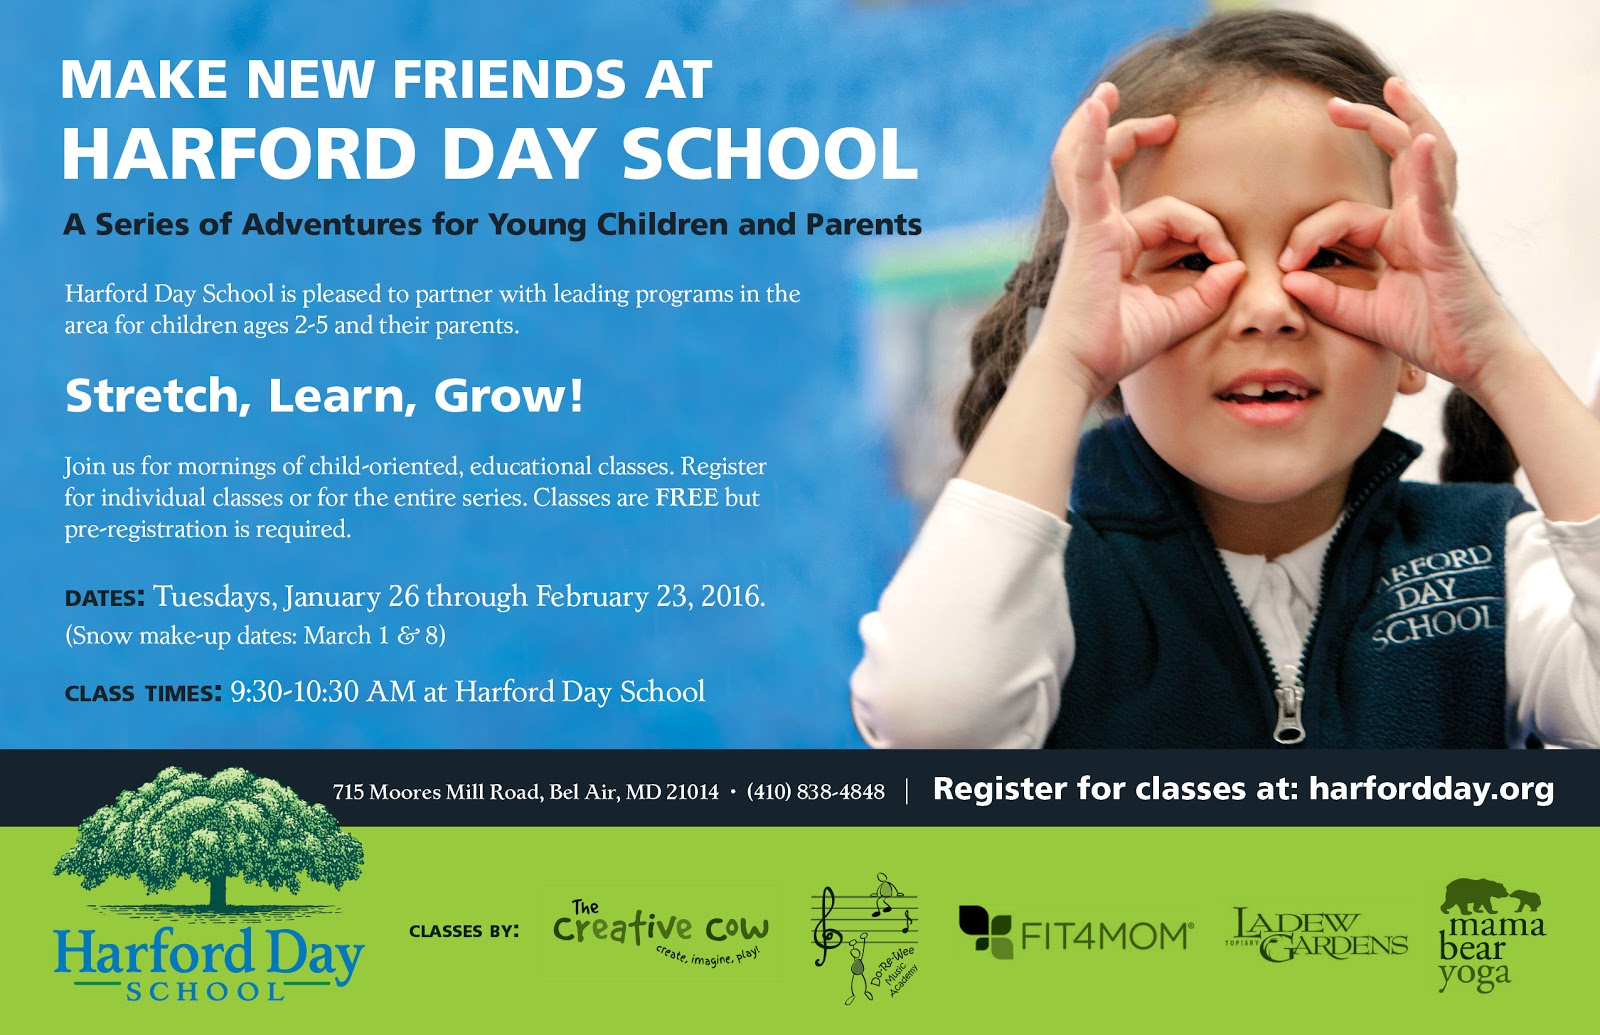 FREE Classes for Ages 2 – 5 at Harford Day School